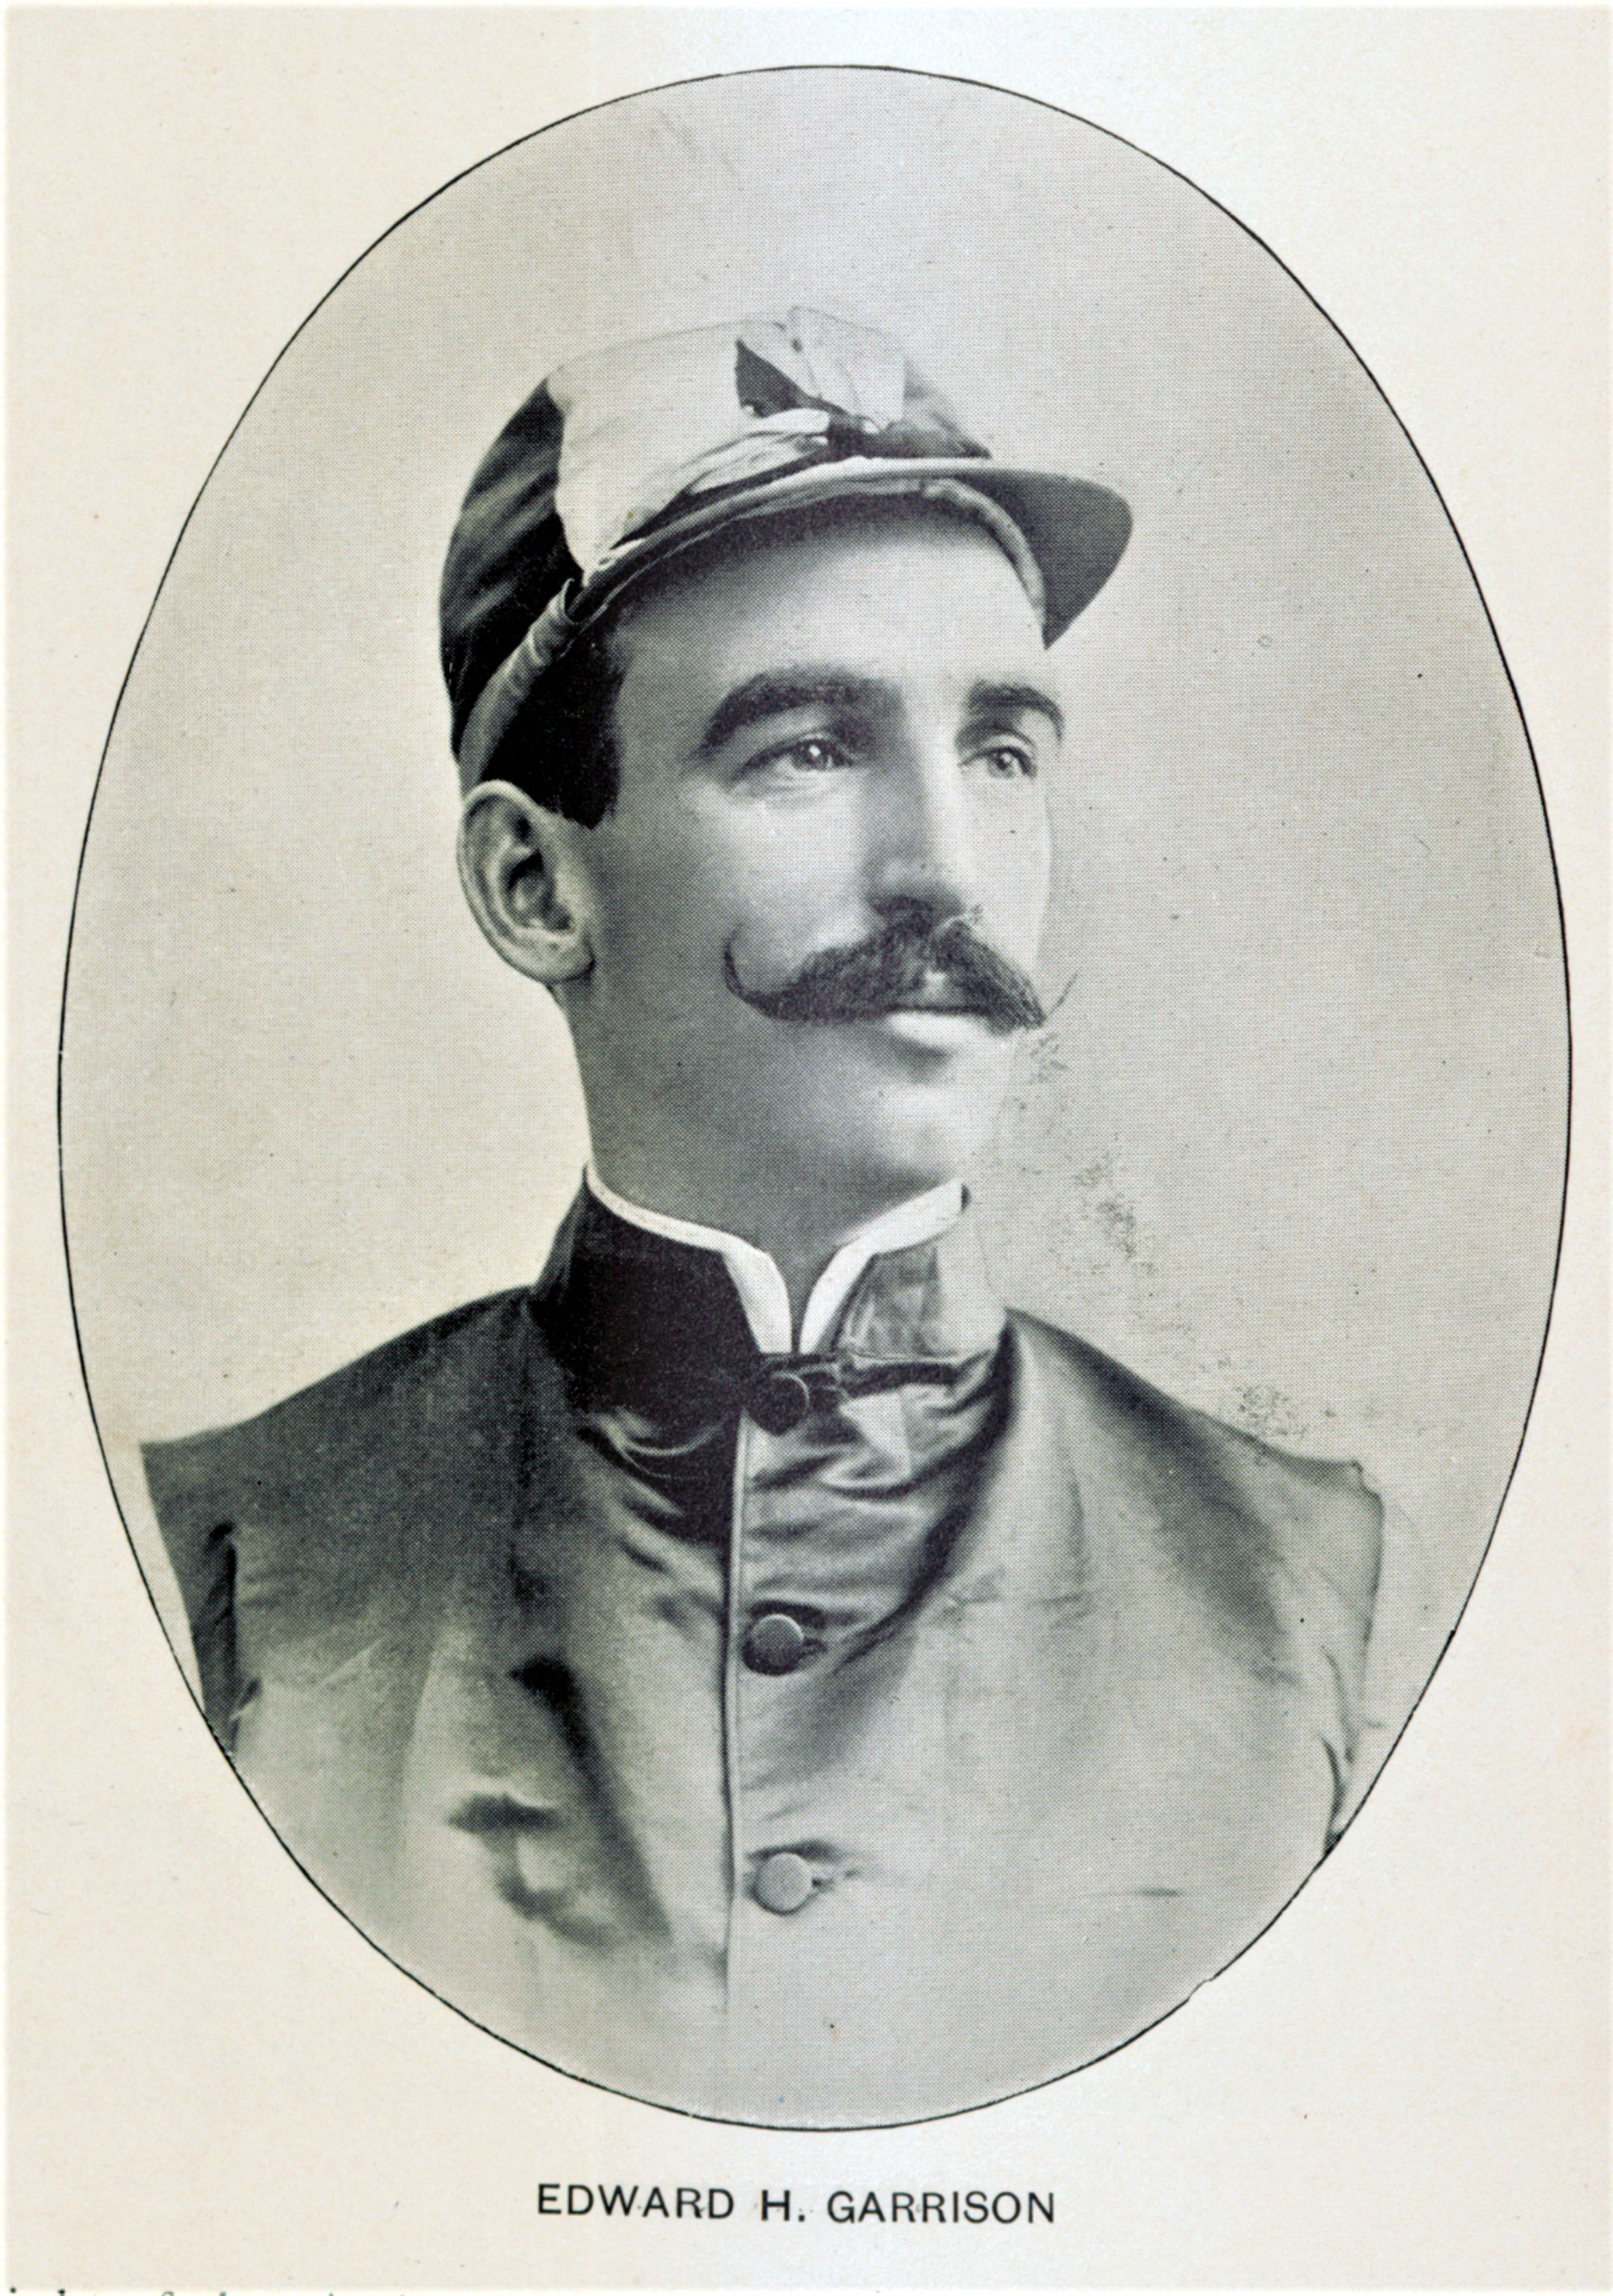 Photograph of jockey Edward H. Garrison from The American Turf (Keeneland Library Collection)